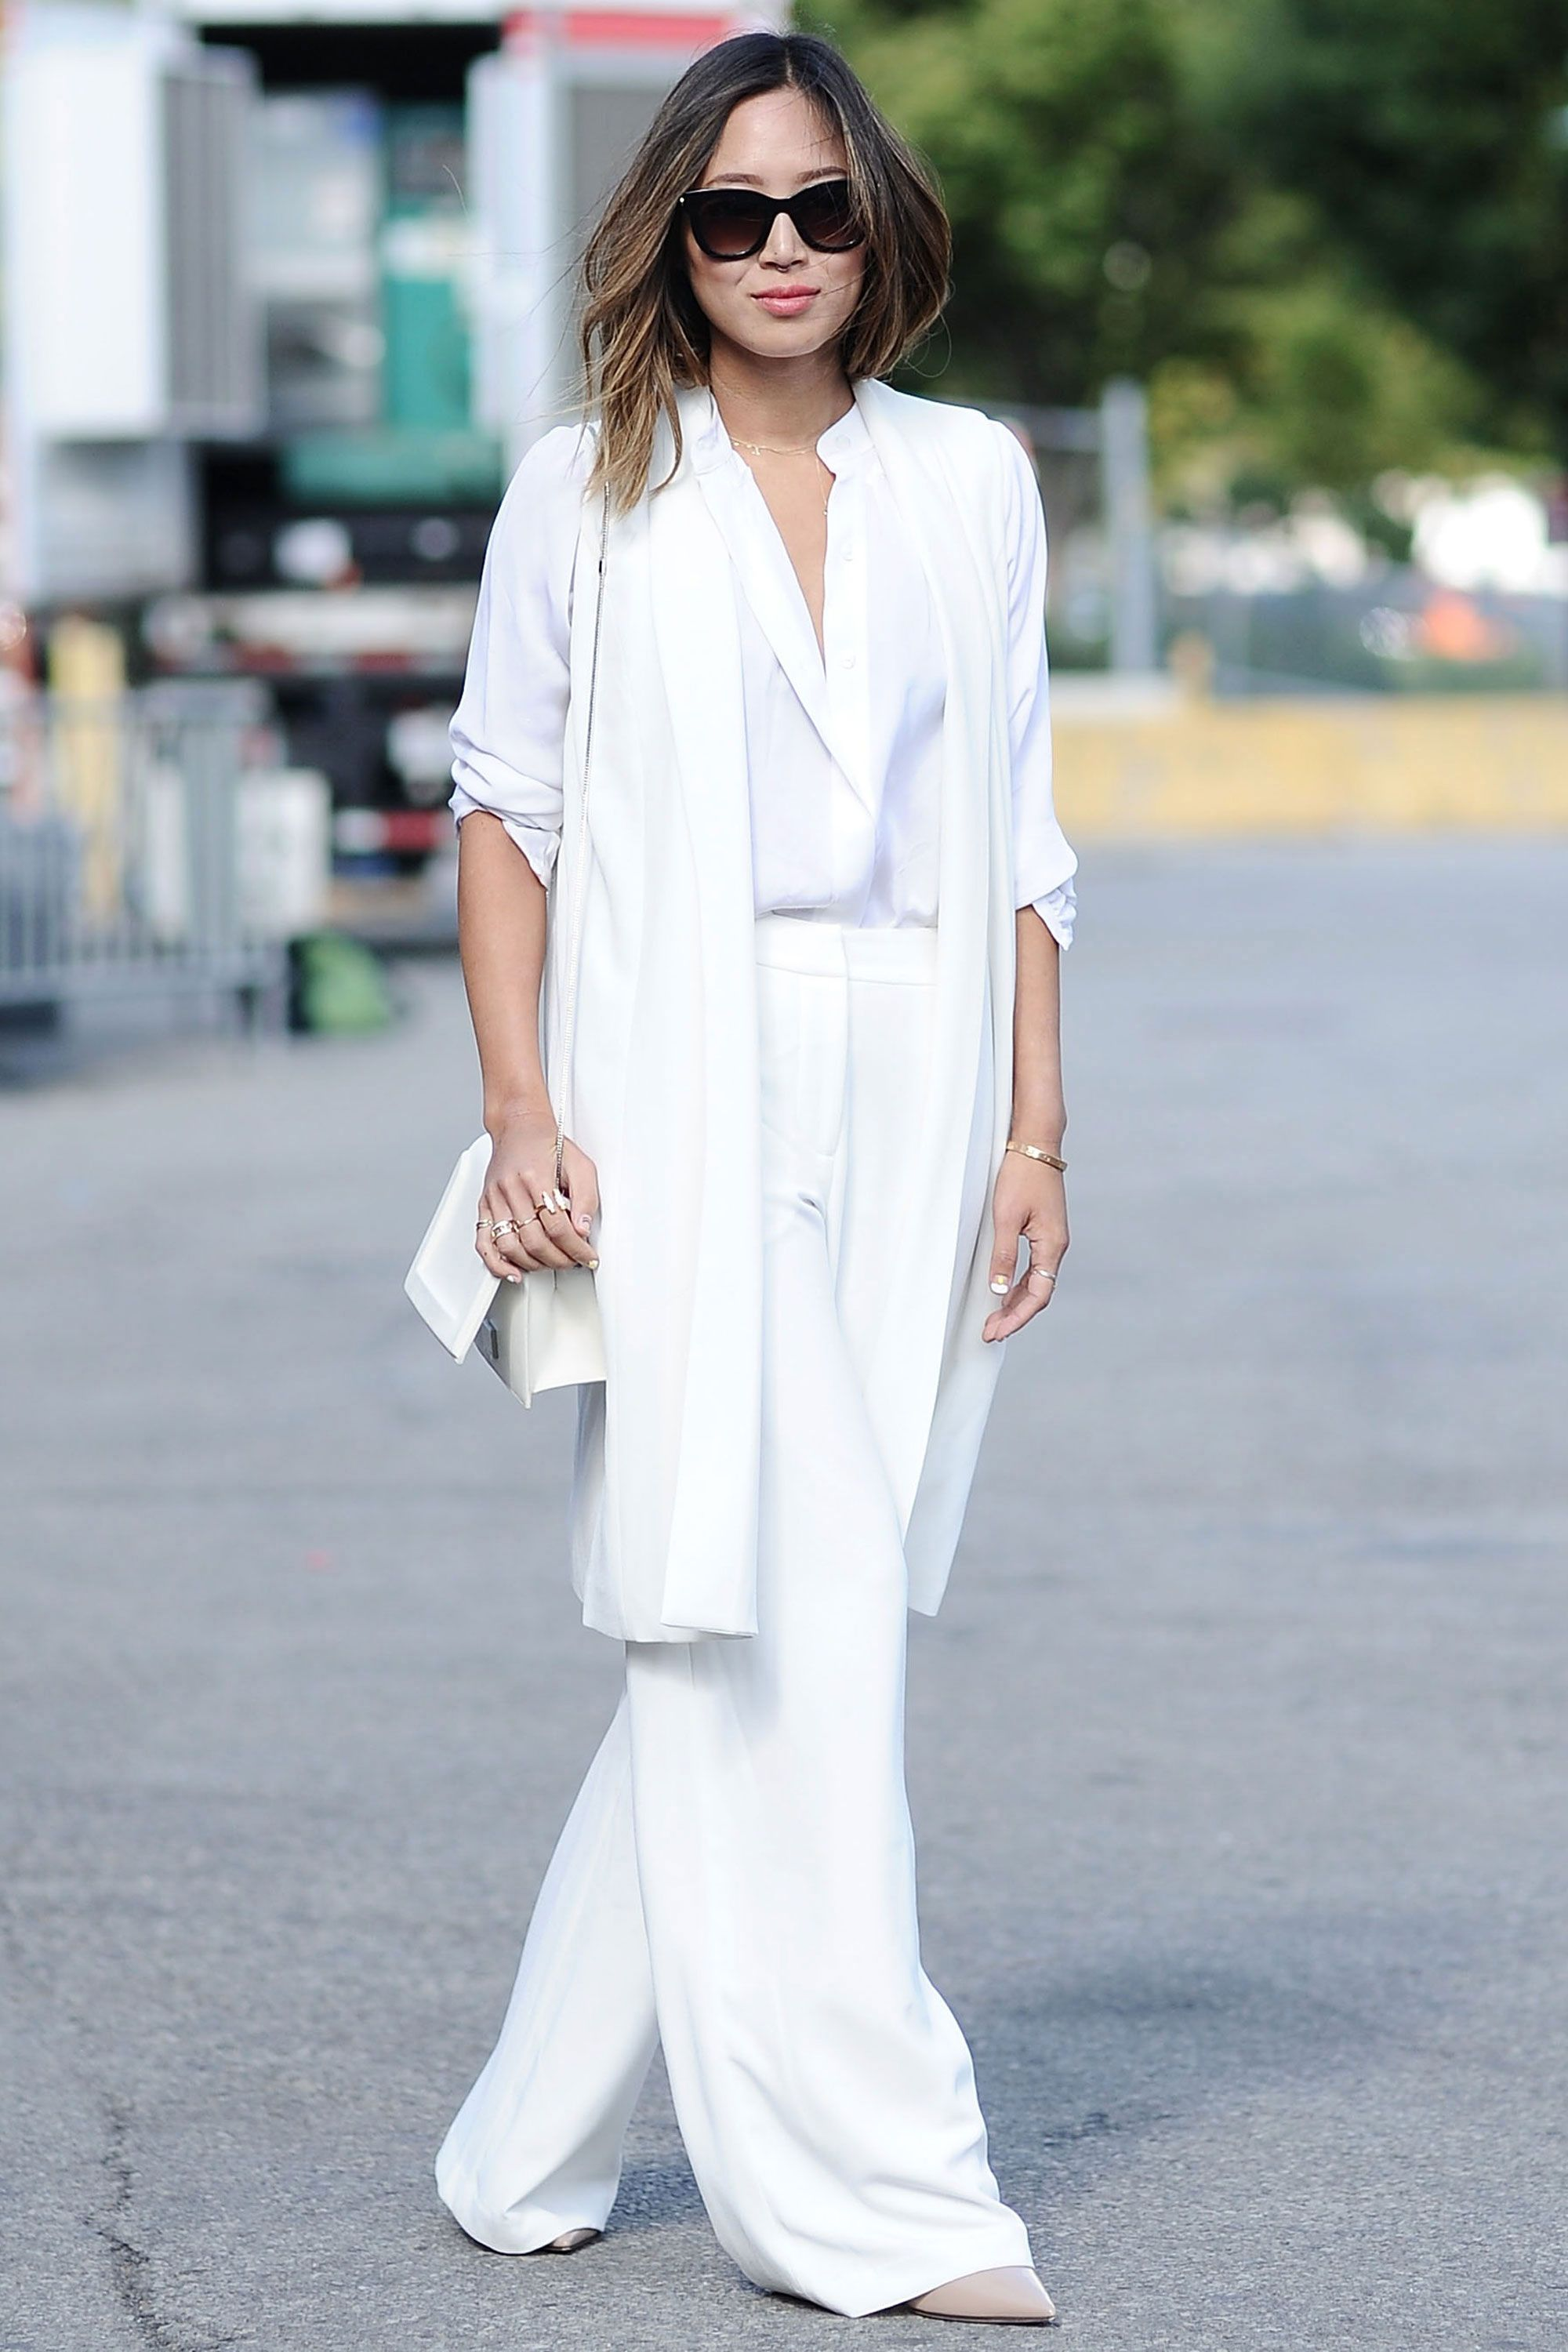 Celebrity White Outfit Ideas - White Outfit Inspiration